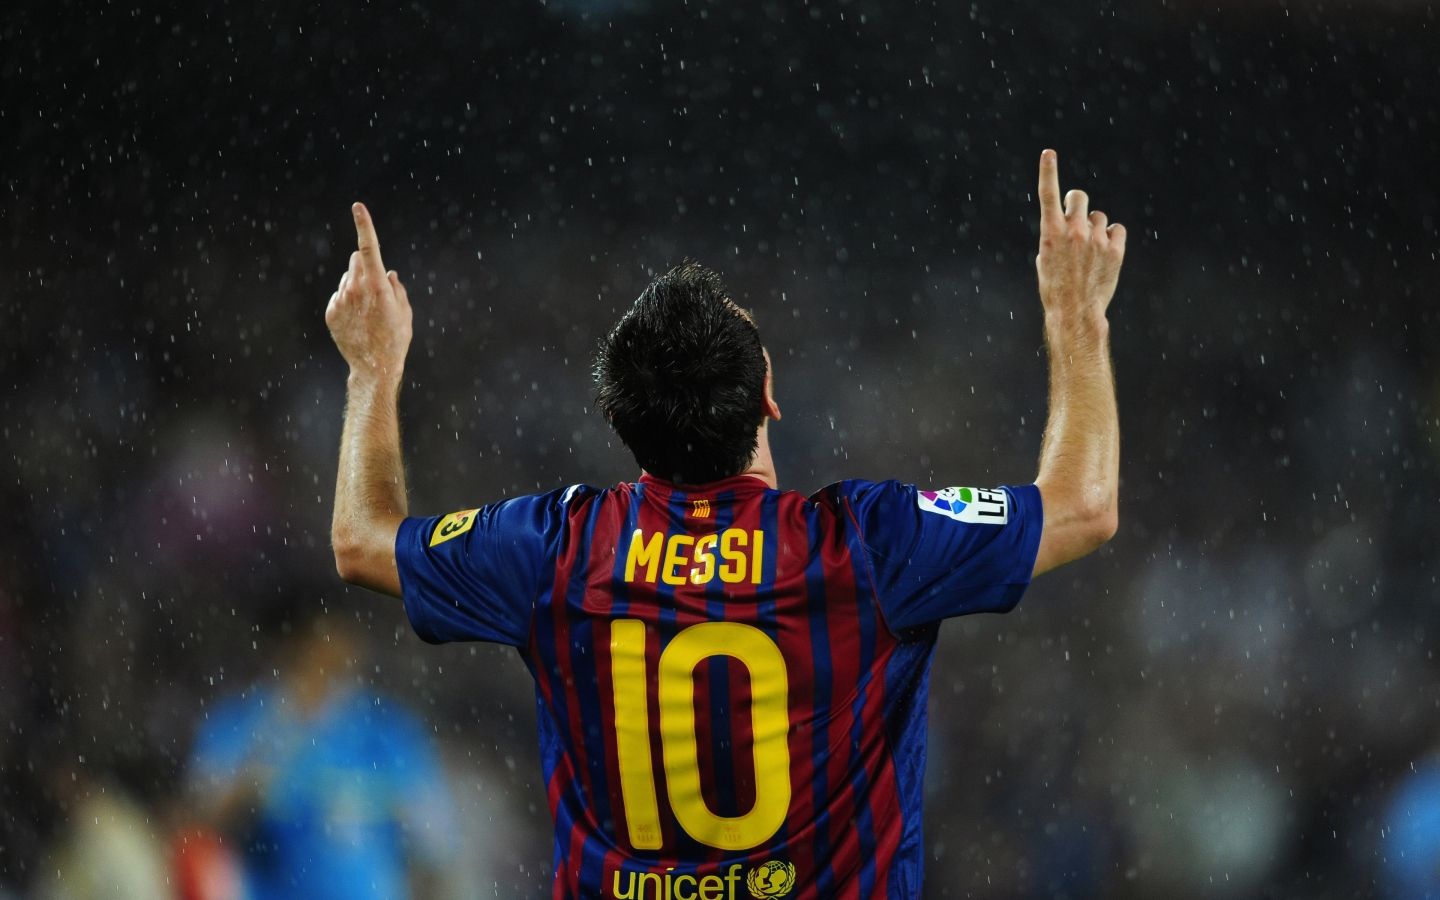 Lionel Messi in Rain for 1440 x 900 widescreen resolution